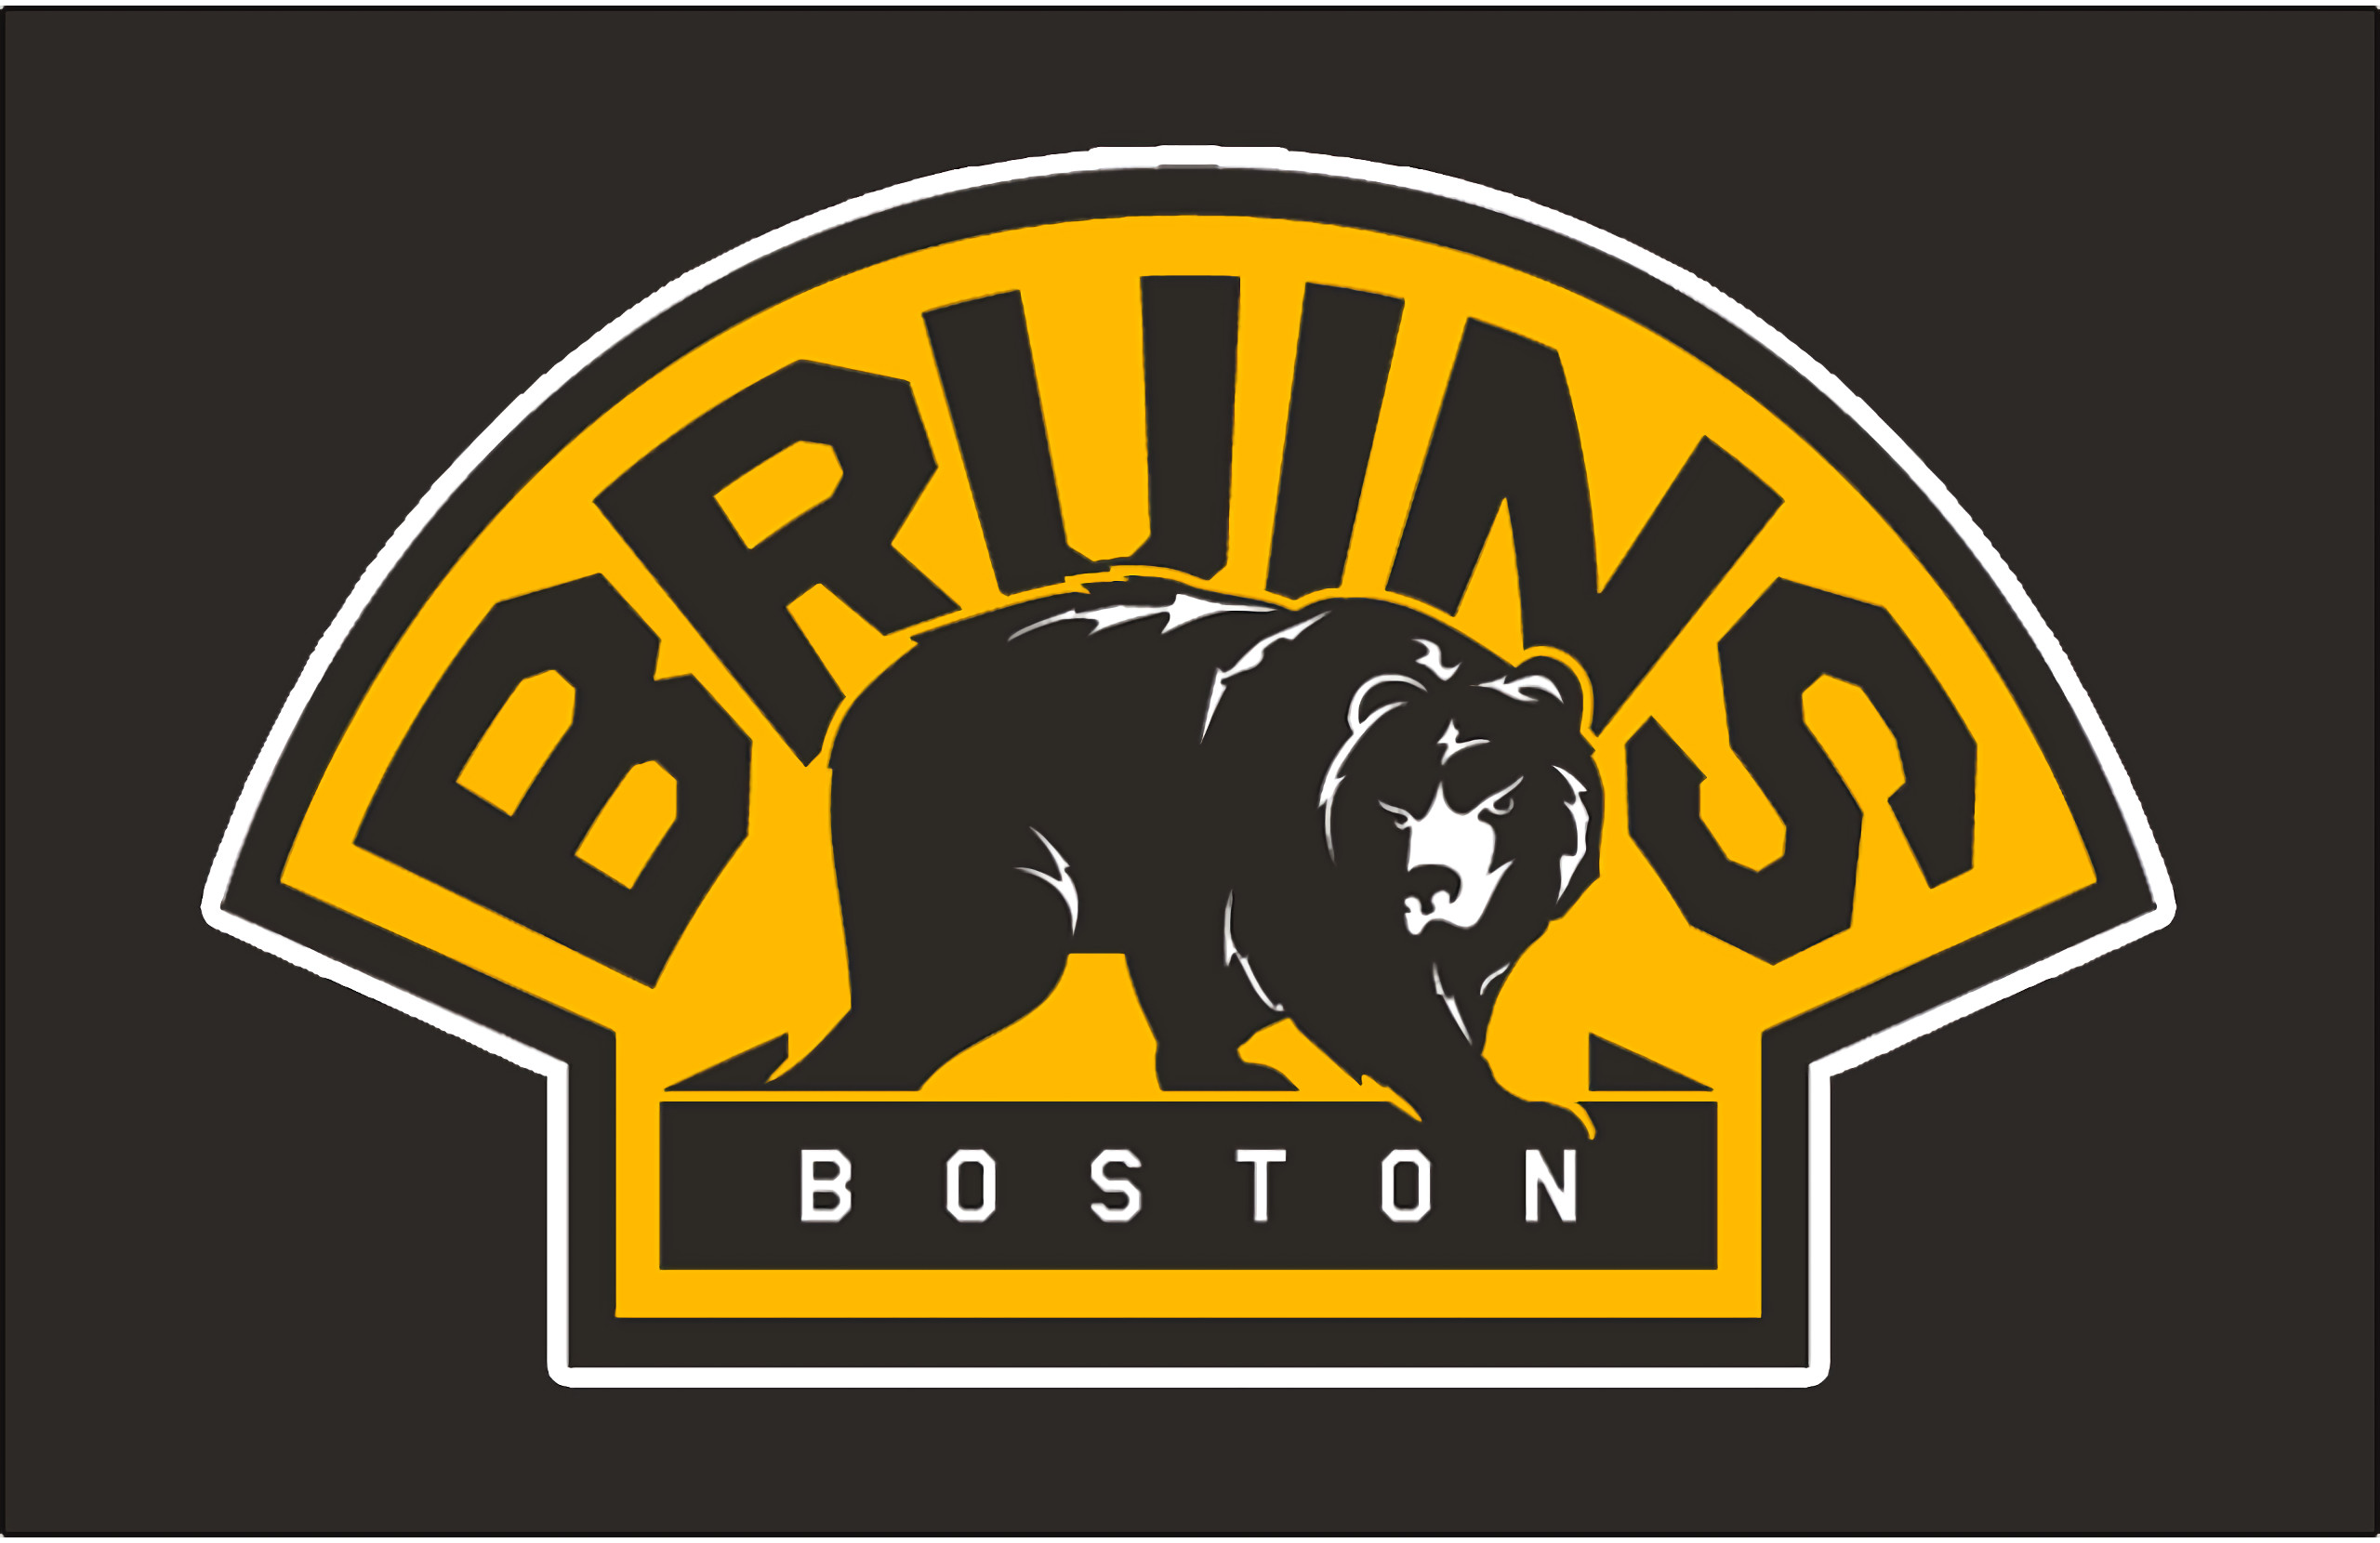 Boston Bruins: Boston Bruins Wallpapers (70+ Images